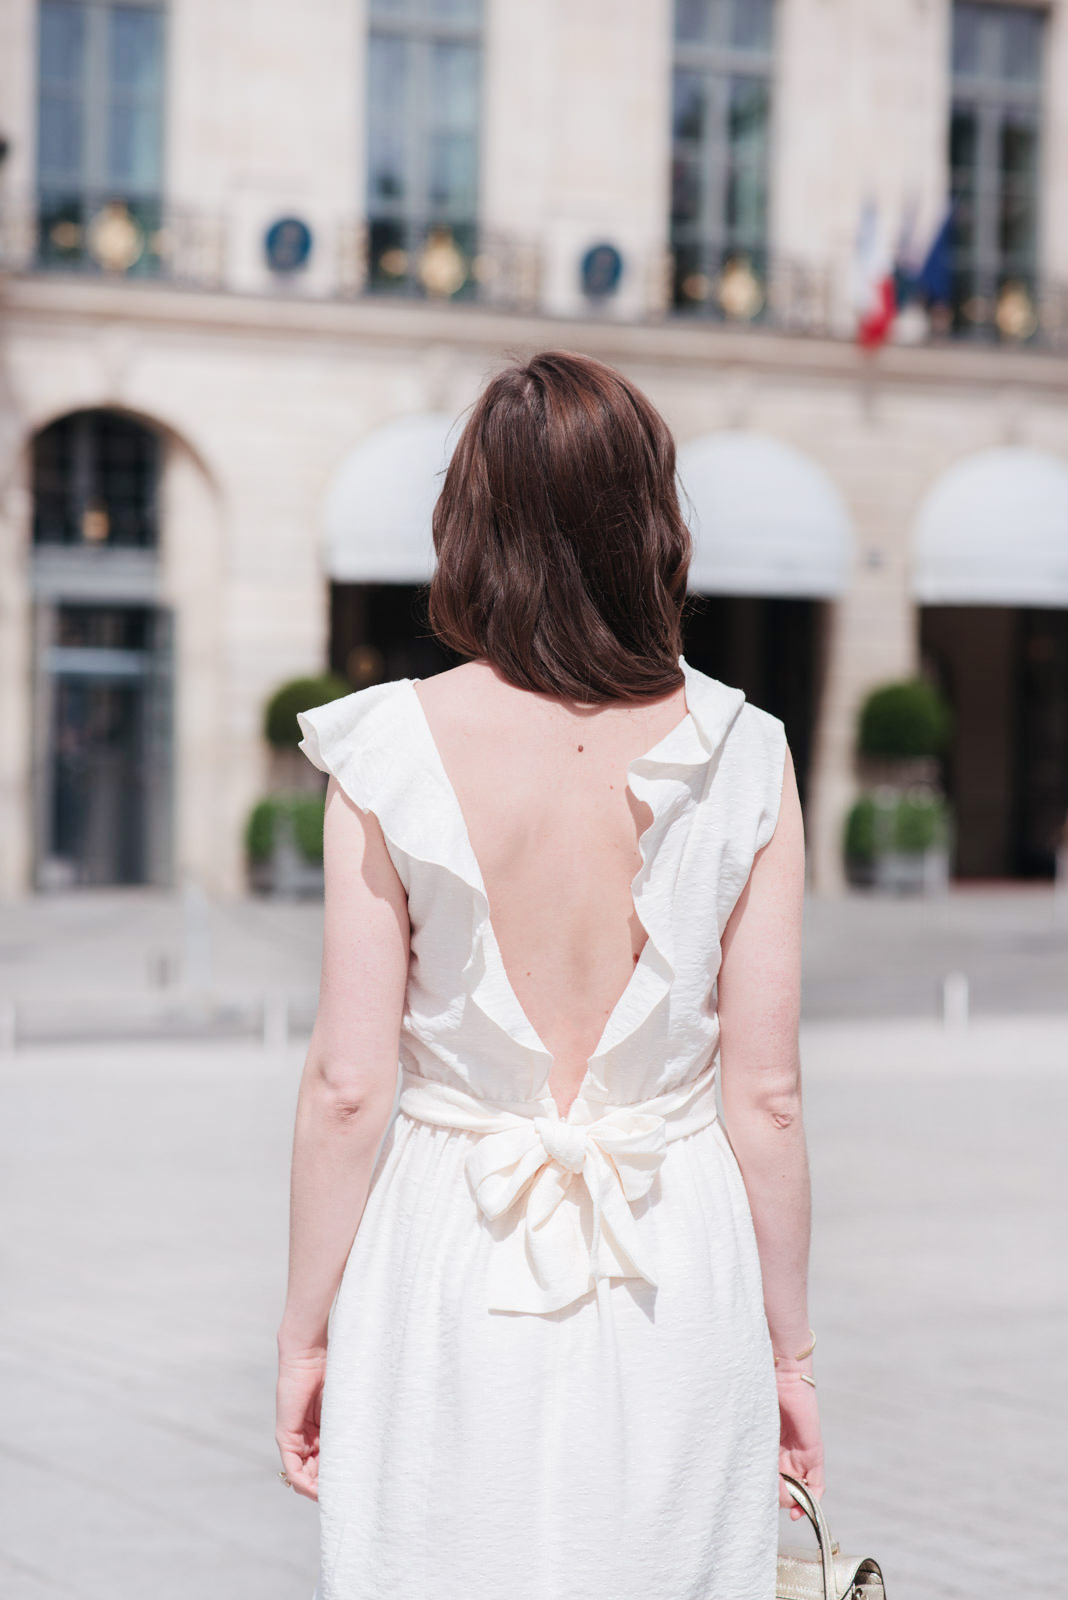 Blog-Mode-And-the-City-Looks-La-Robe-Blanche-Parfaite-9